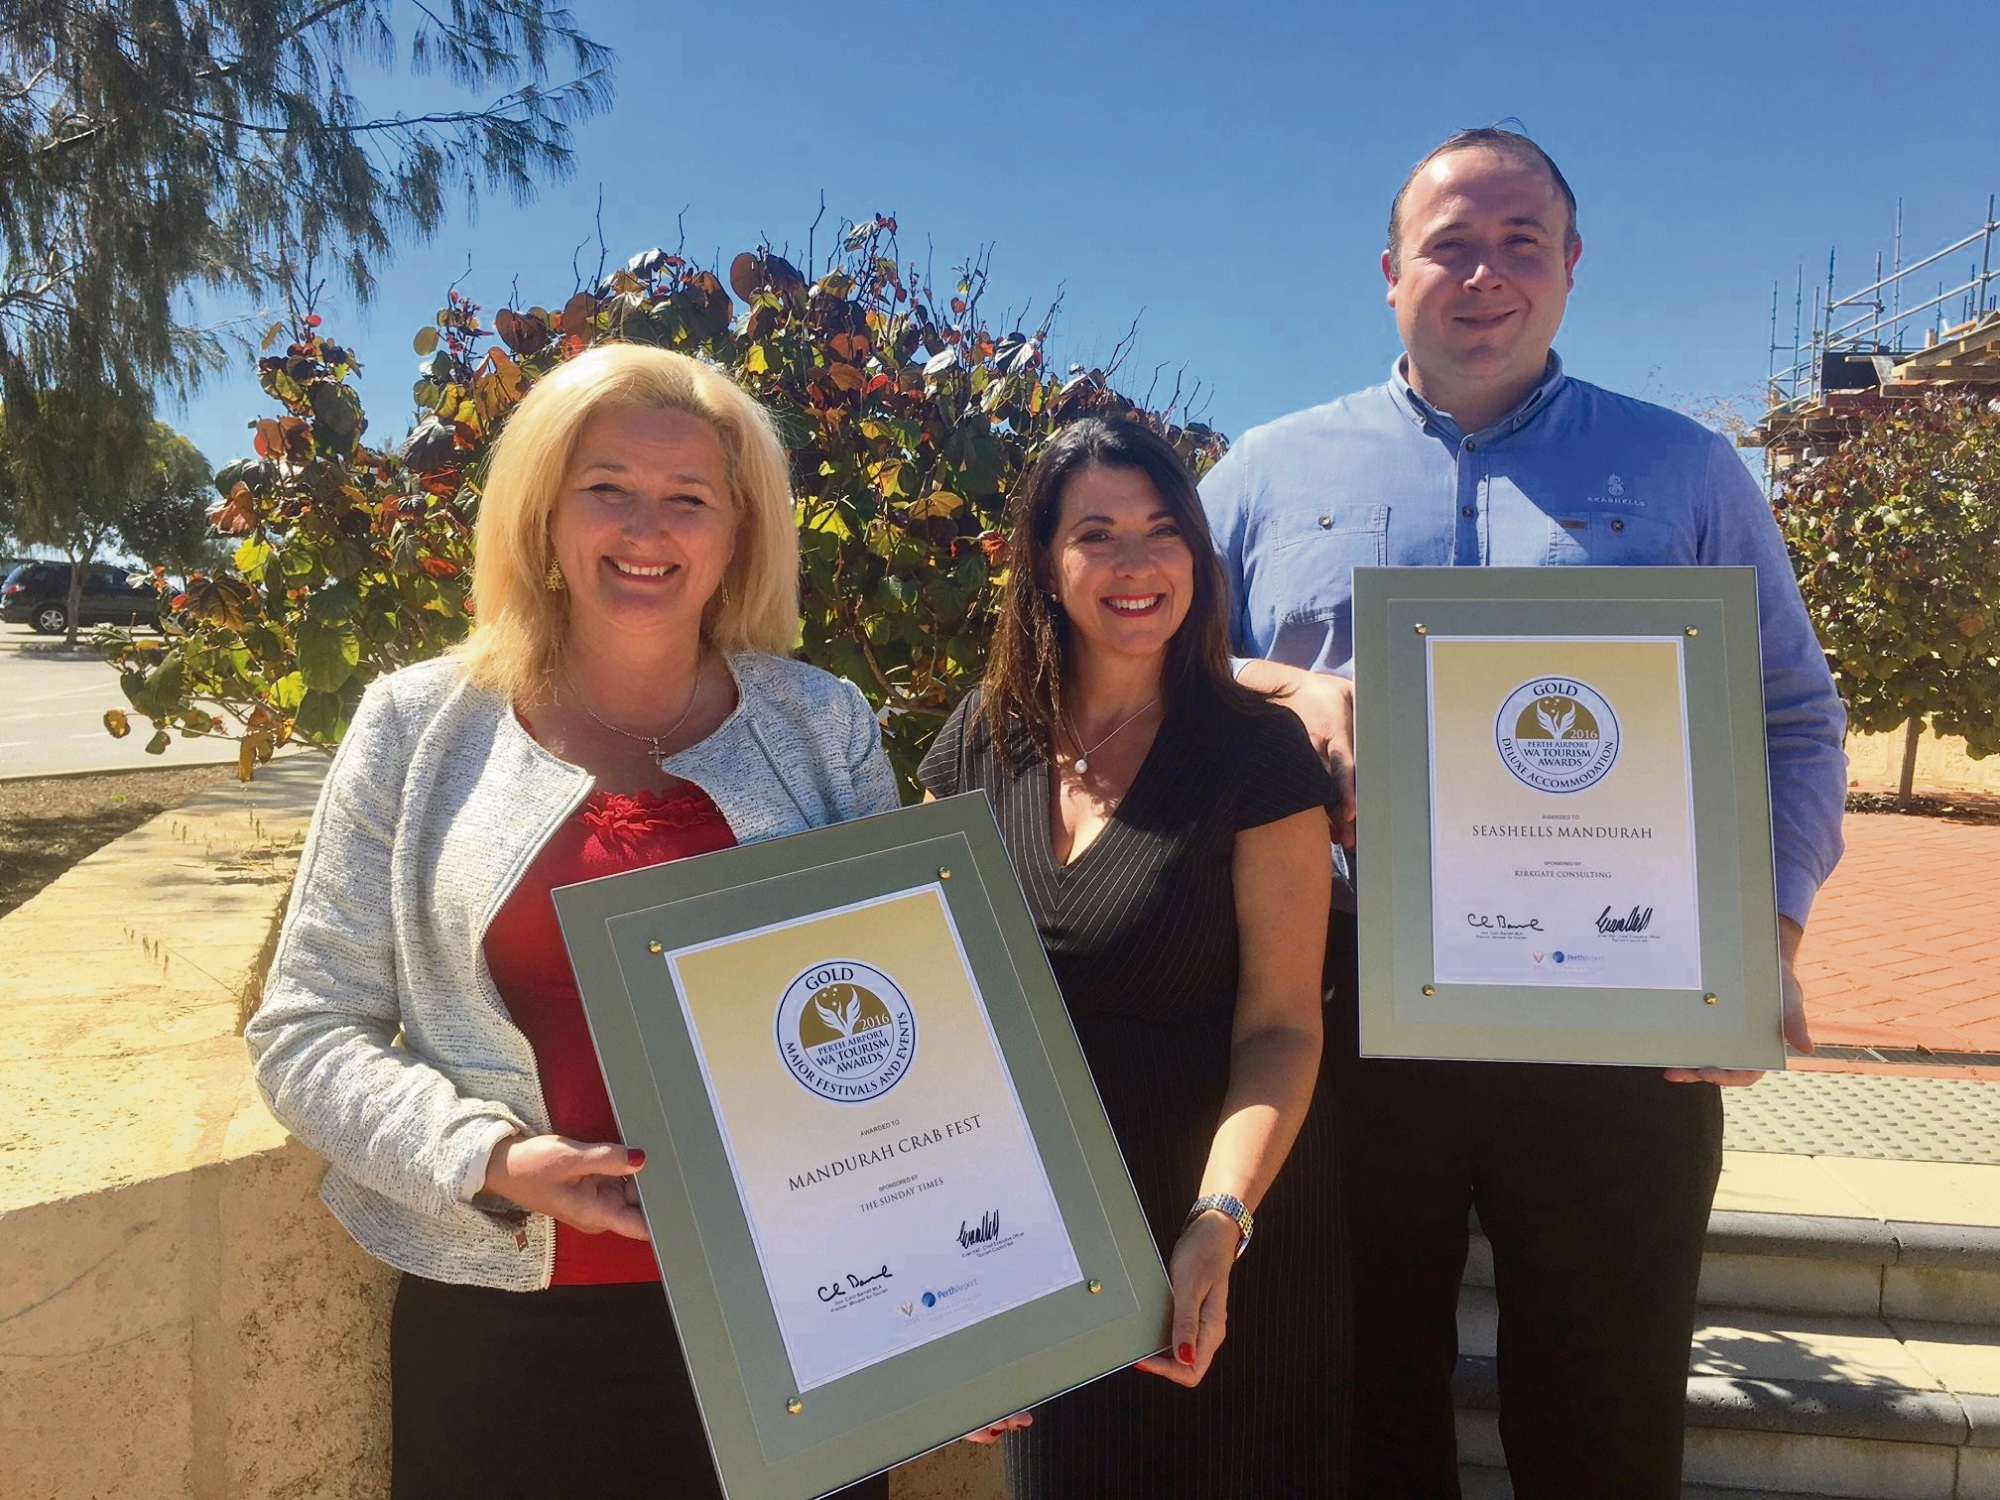 Mandurah Crab Fest and Seashells Mandurah win WA Tourism Awards